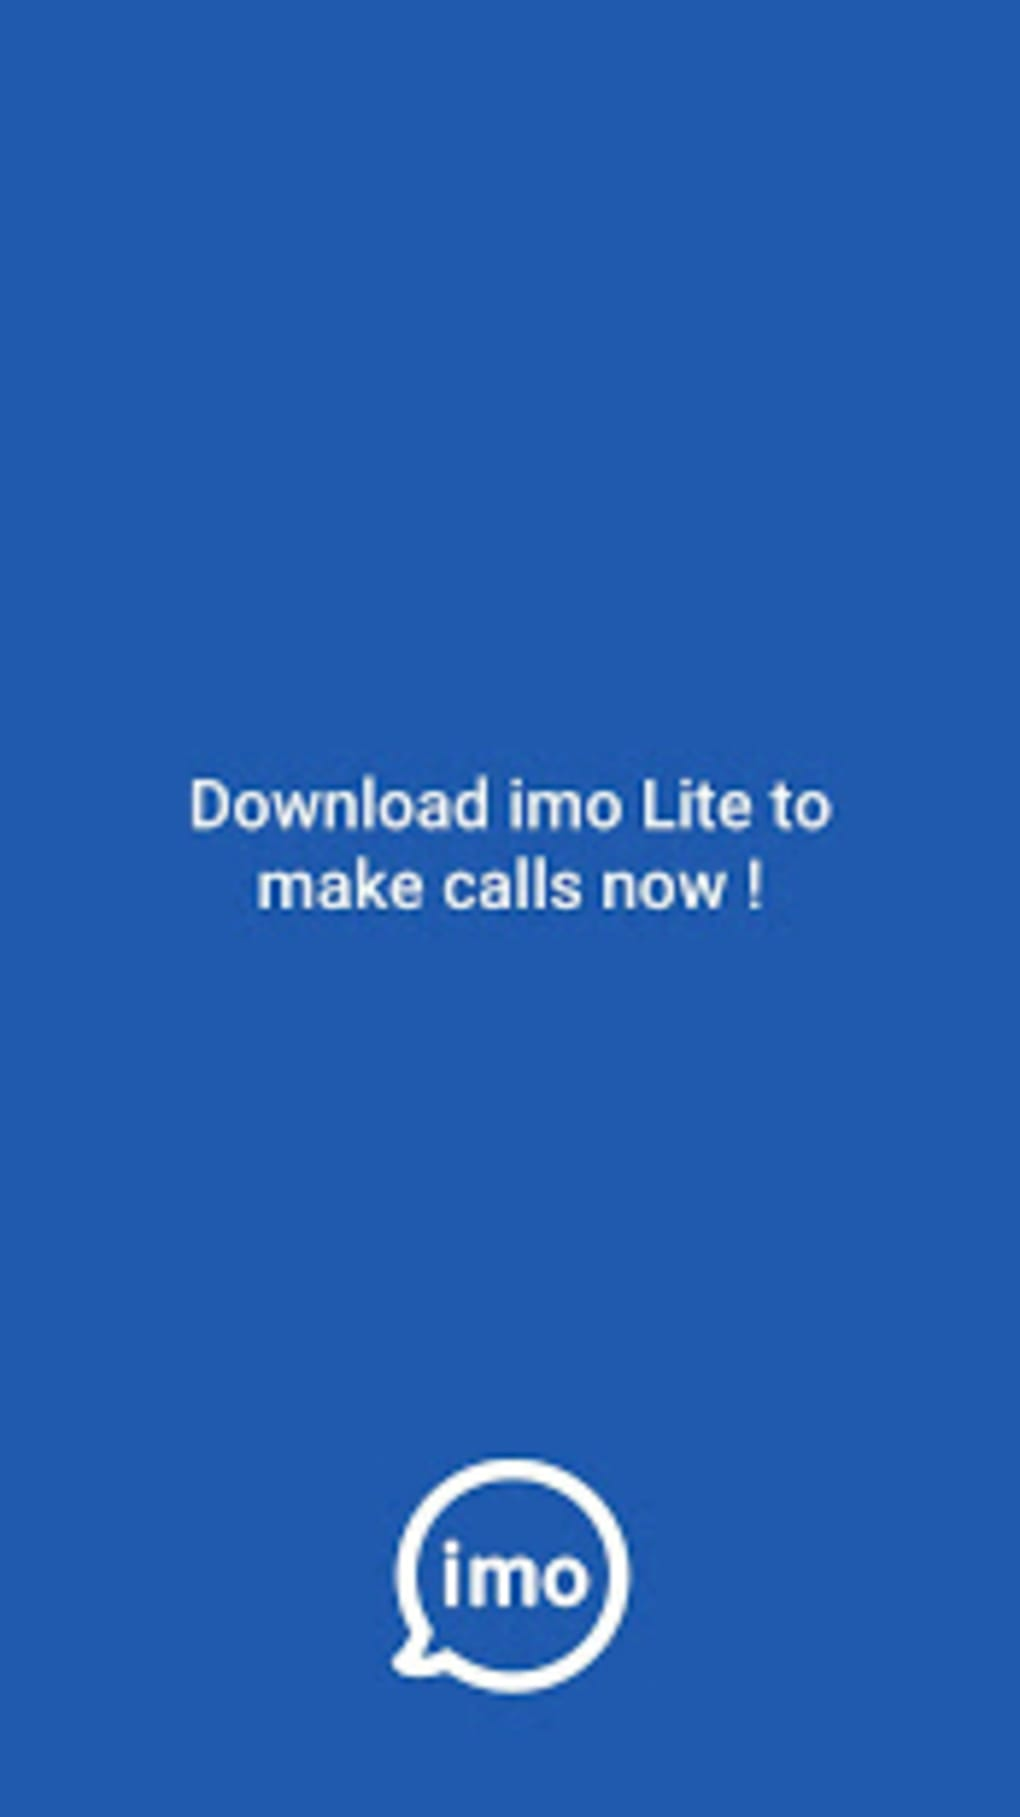 imo Lite - New2019 Superfast Free calls just 5MB for Android - Download